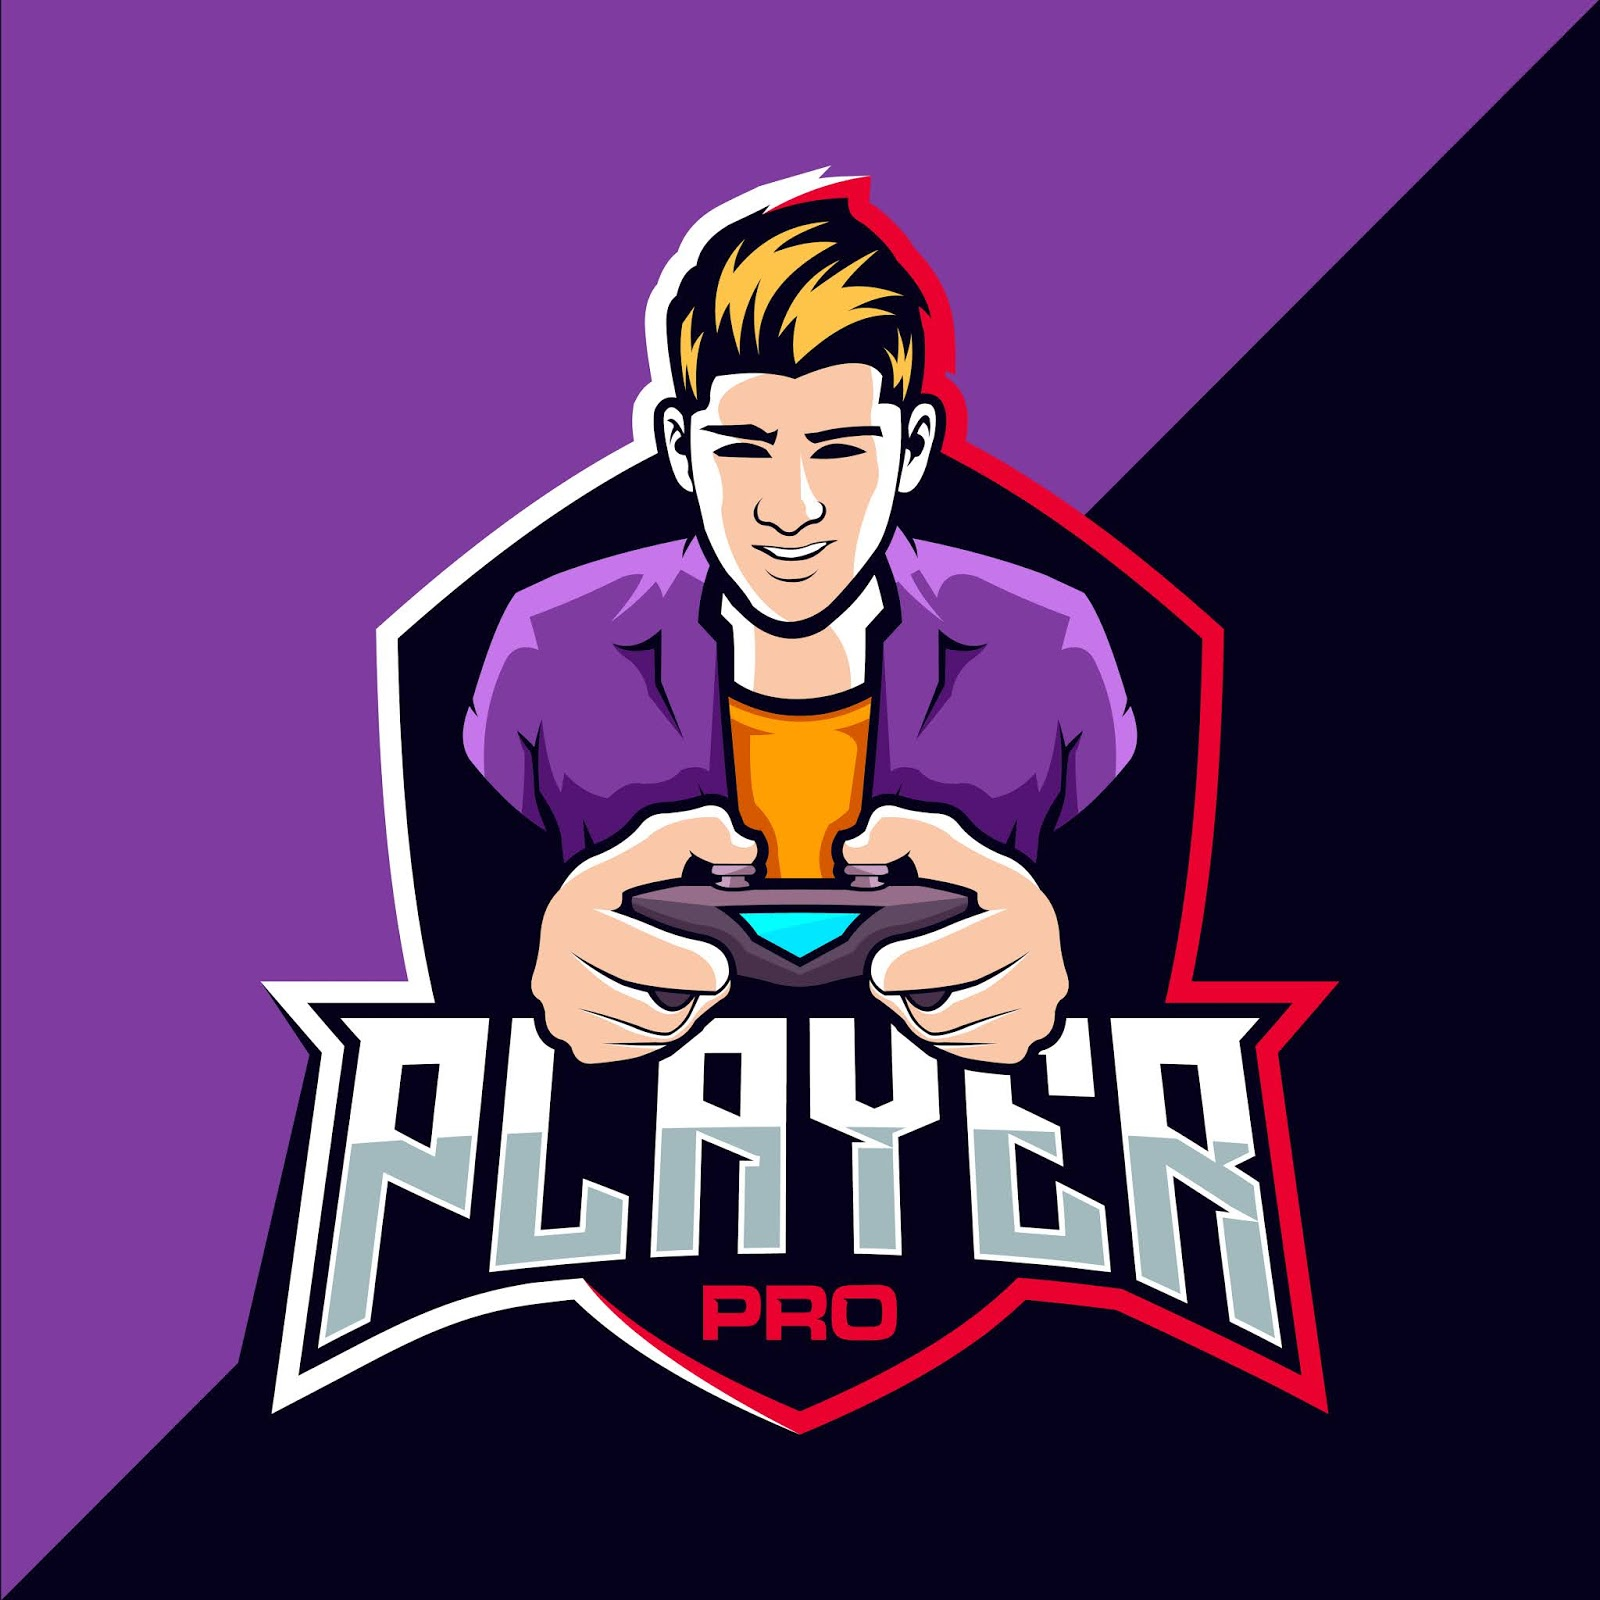 Pro Player Esport Game Logo Funny Free Download Vector CDR, AI, EPS and PNG Formats